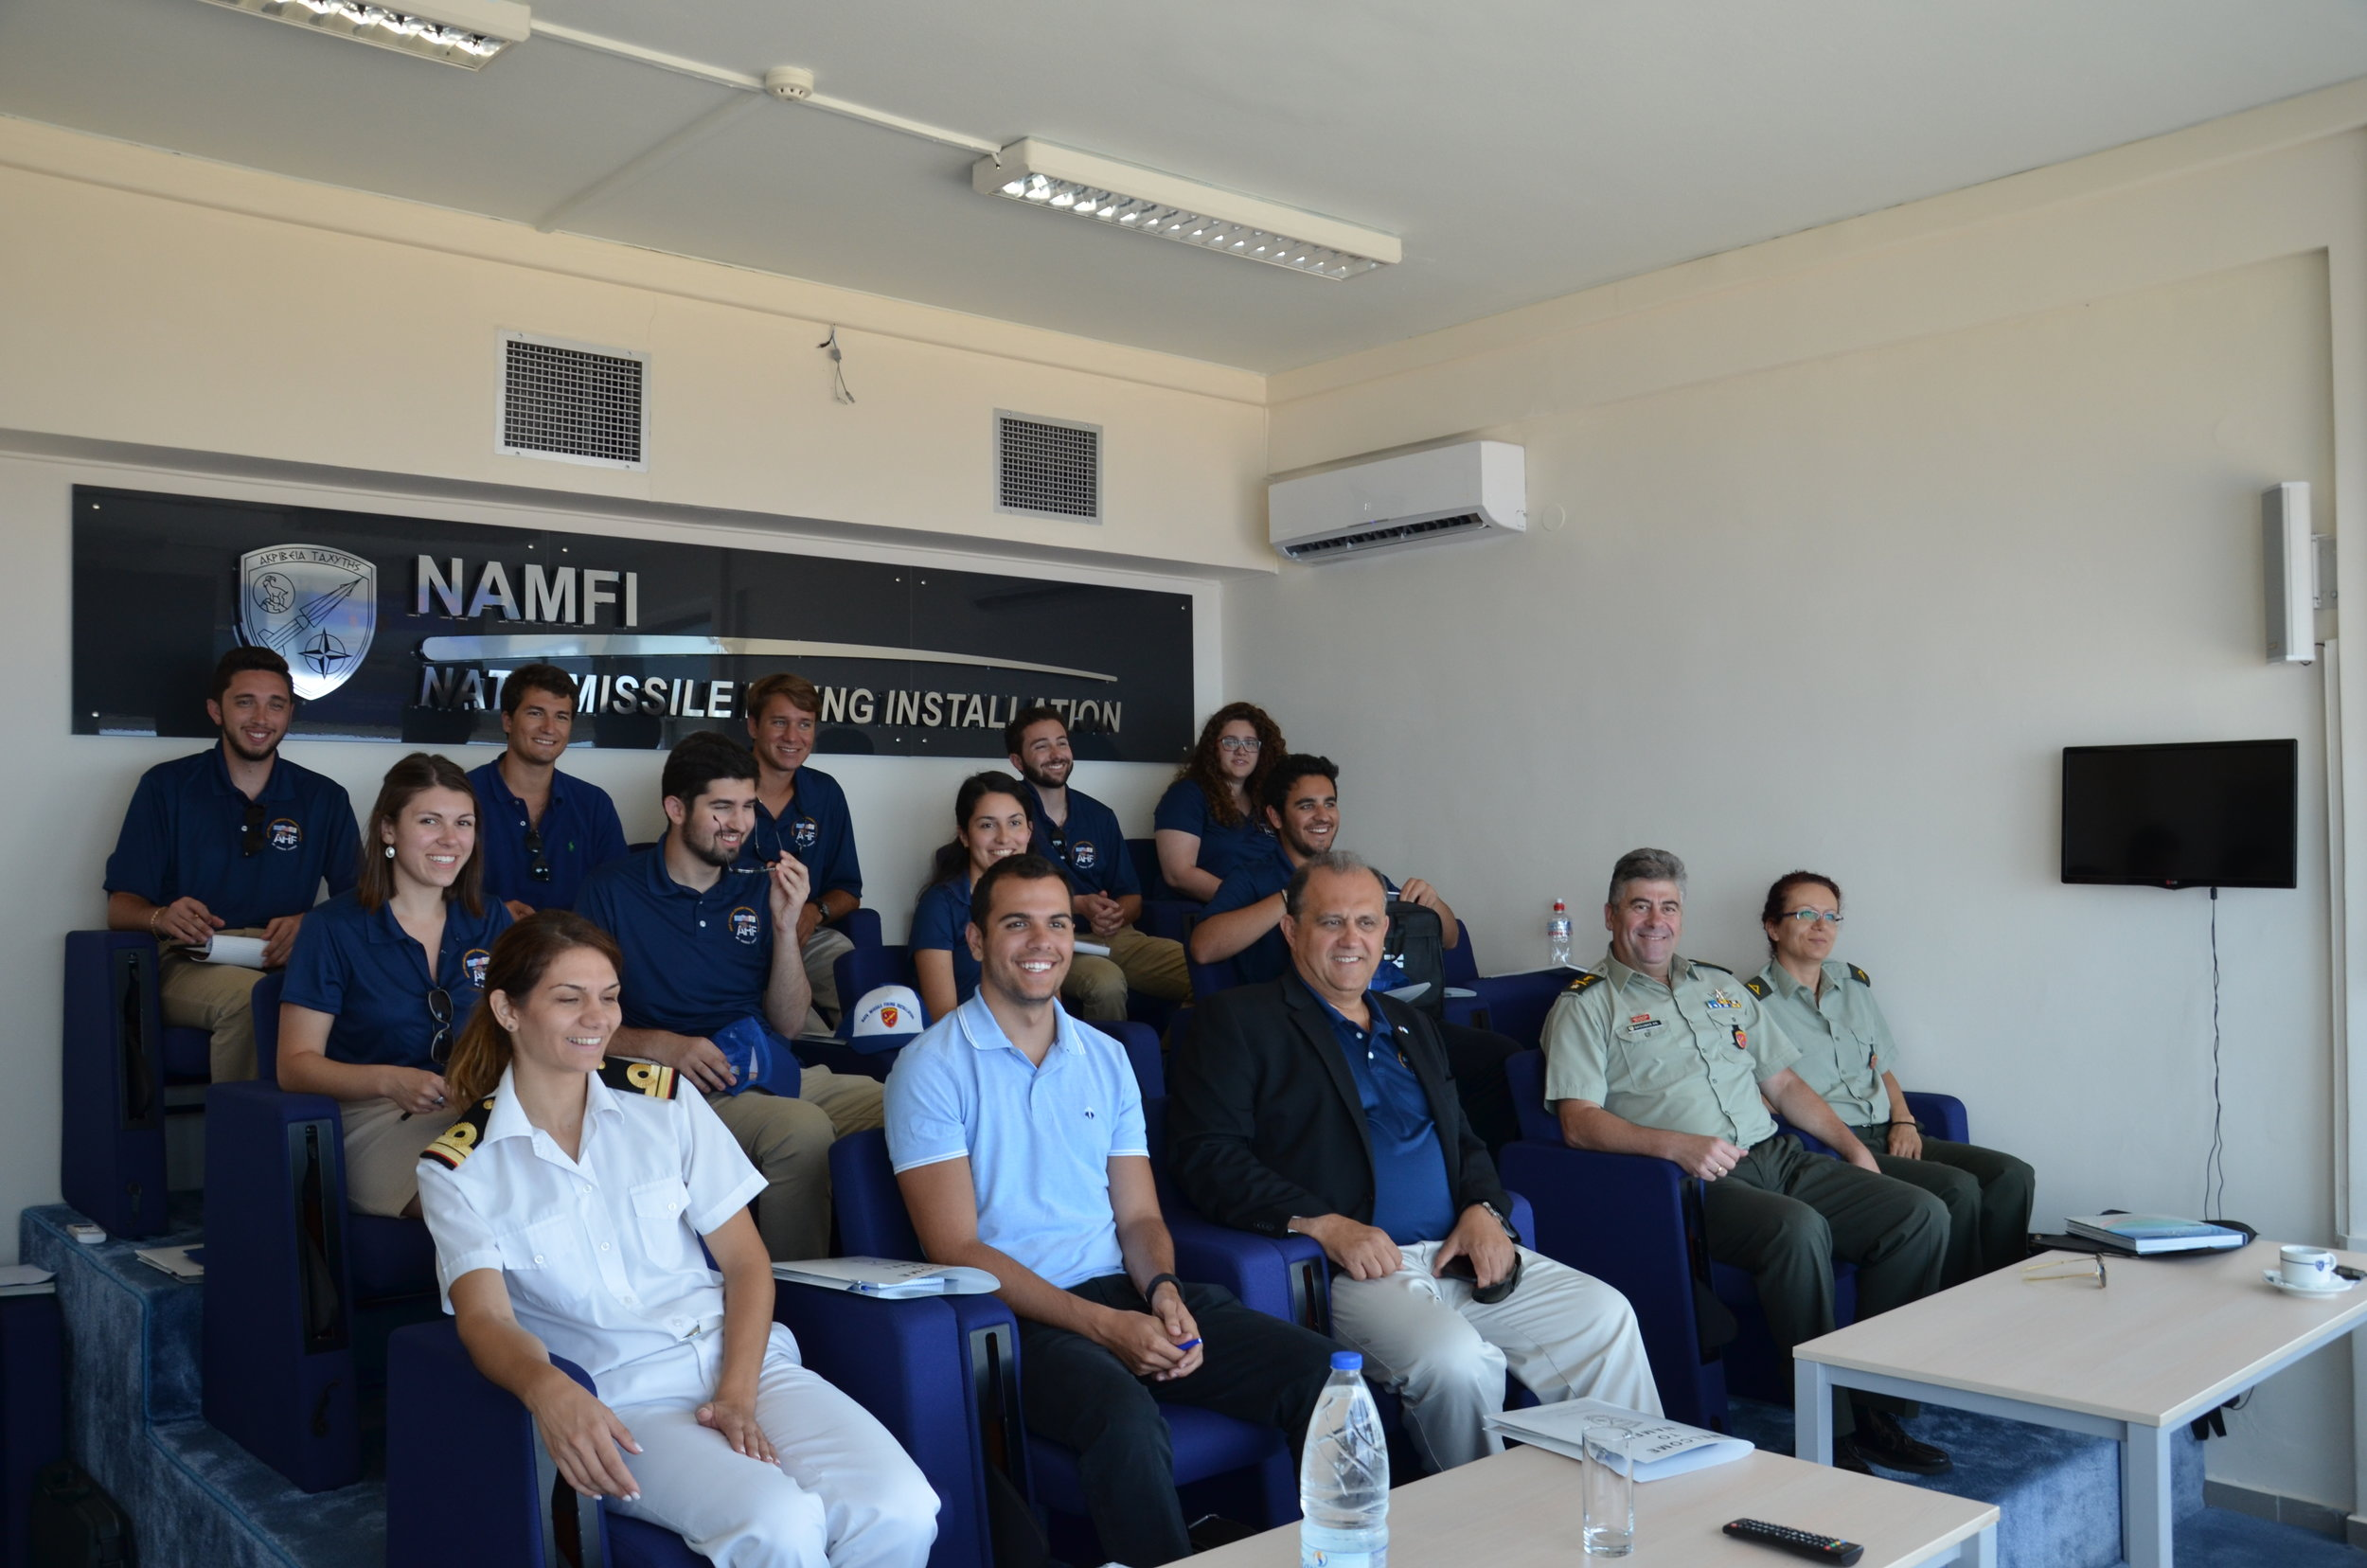 Brigadier General Anastasios Gkoumas, Commander of the NATO Missile Firing Installation (NAMFI) provides the students with a briefing on the NAMFI facilities.